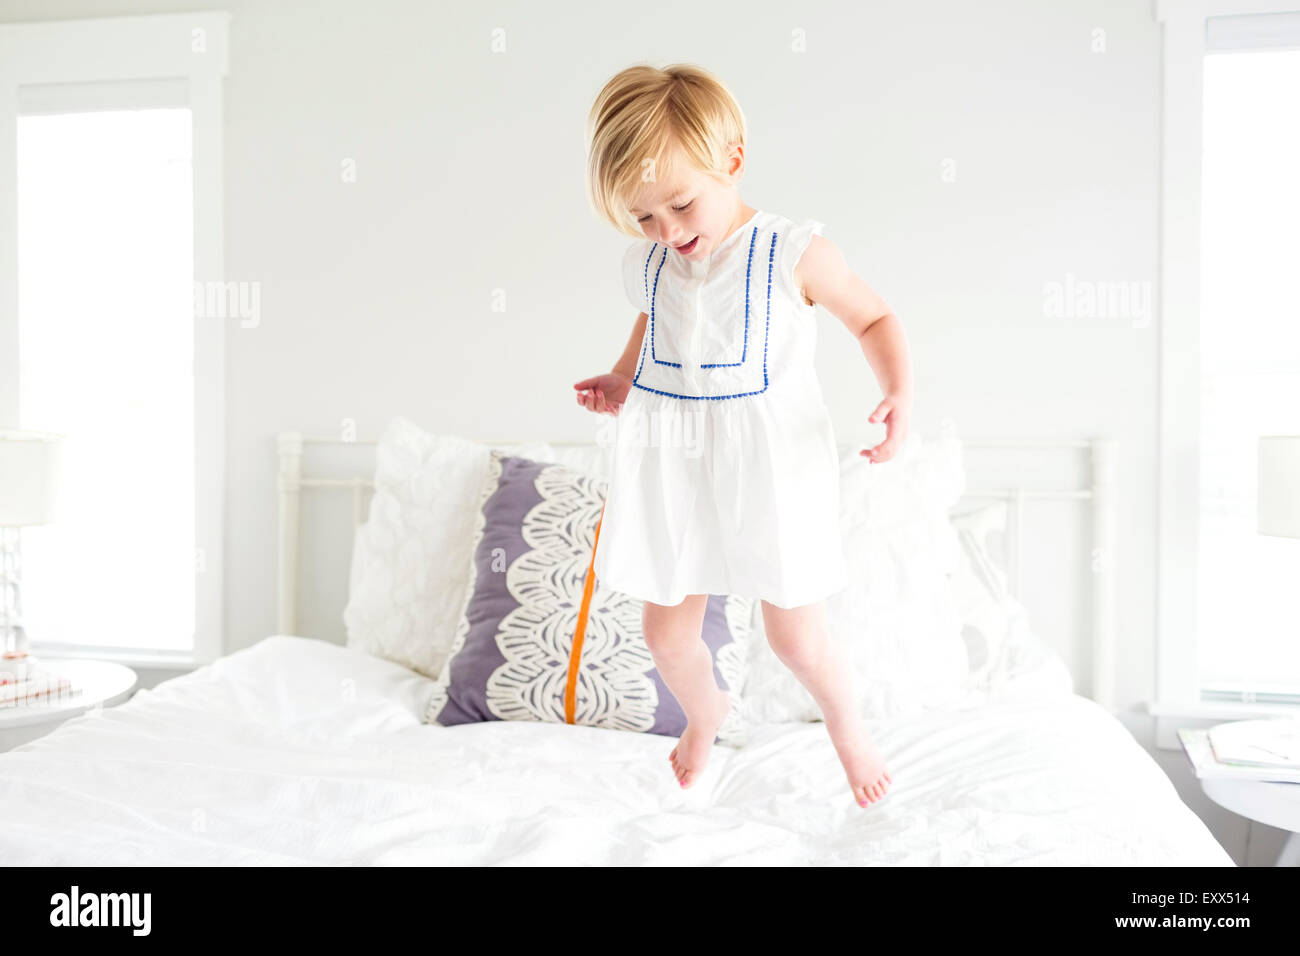 Girl (2-3) jumping on bed - Stock Image